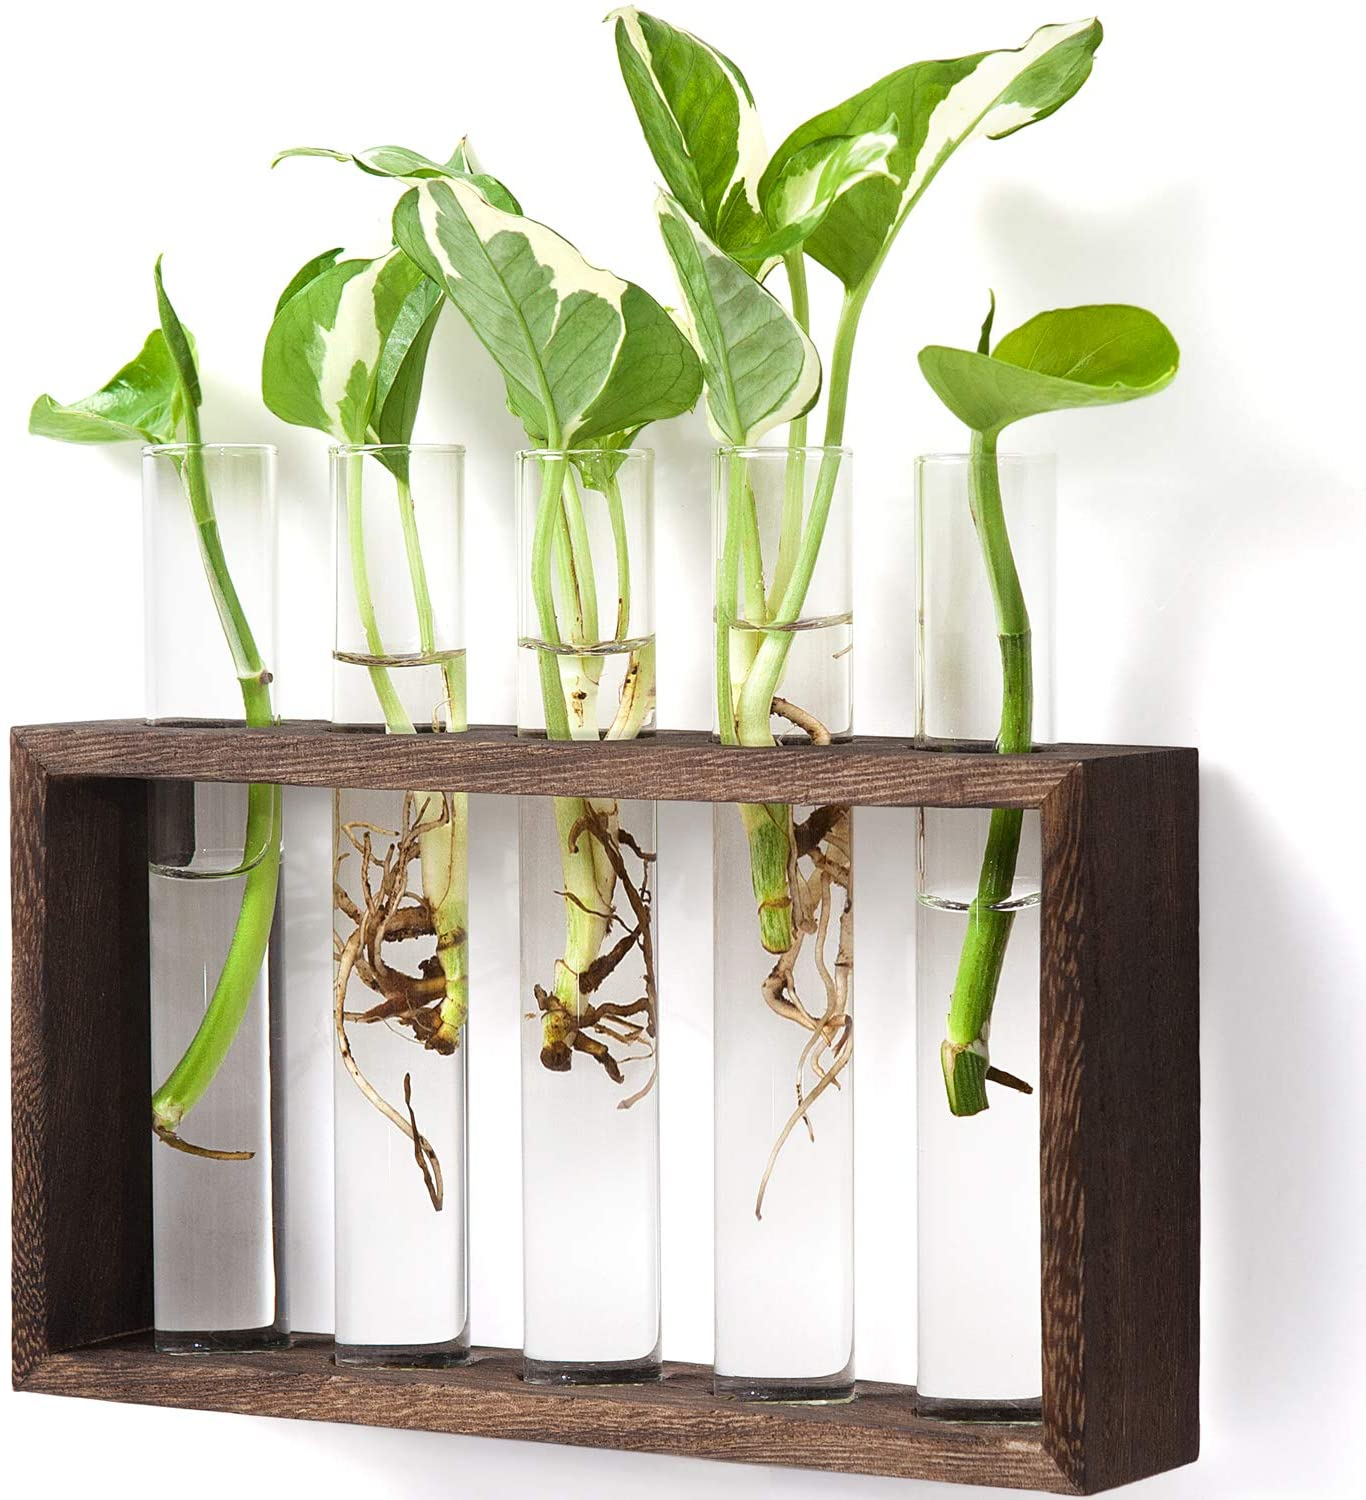 Wooden Propagation Station Hydroponic Tabletop One Vase